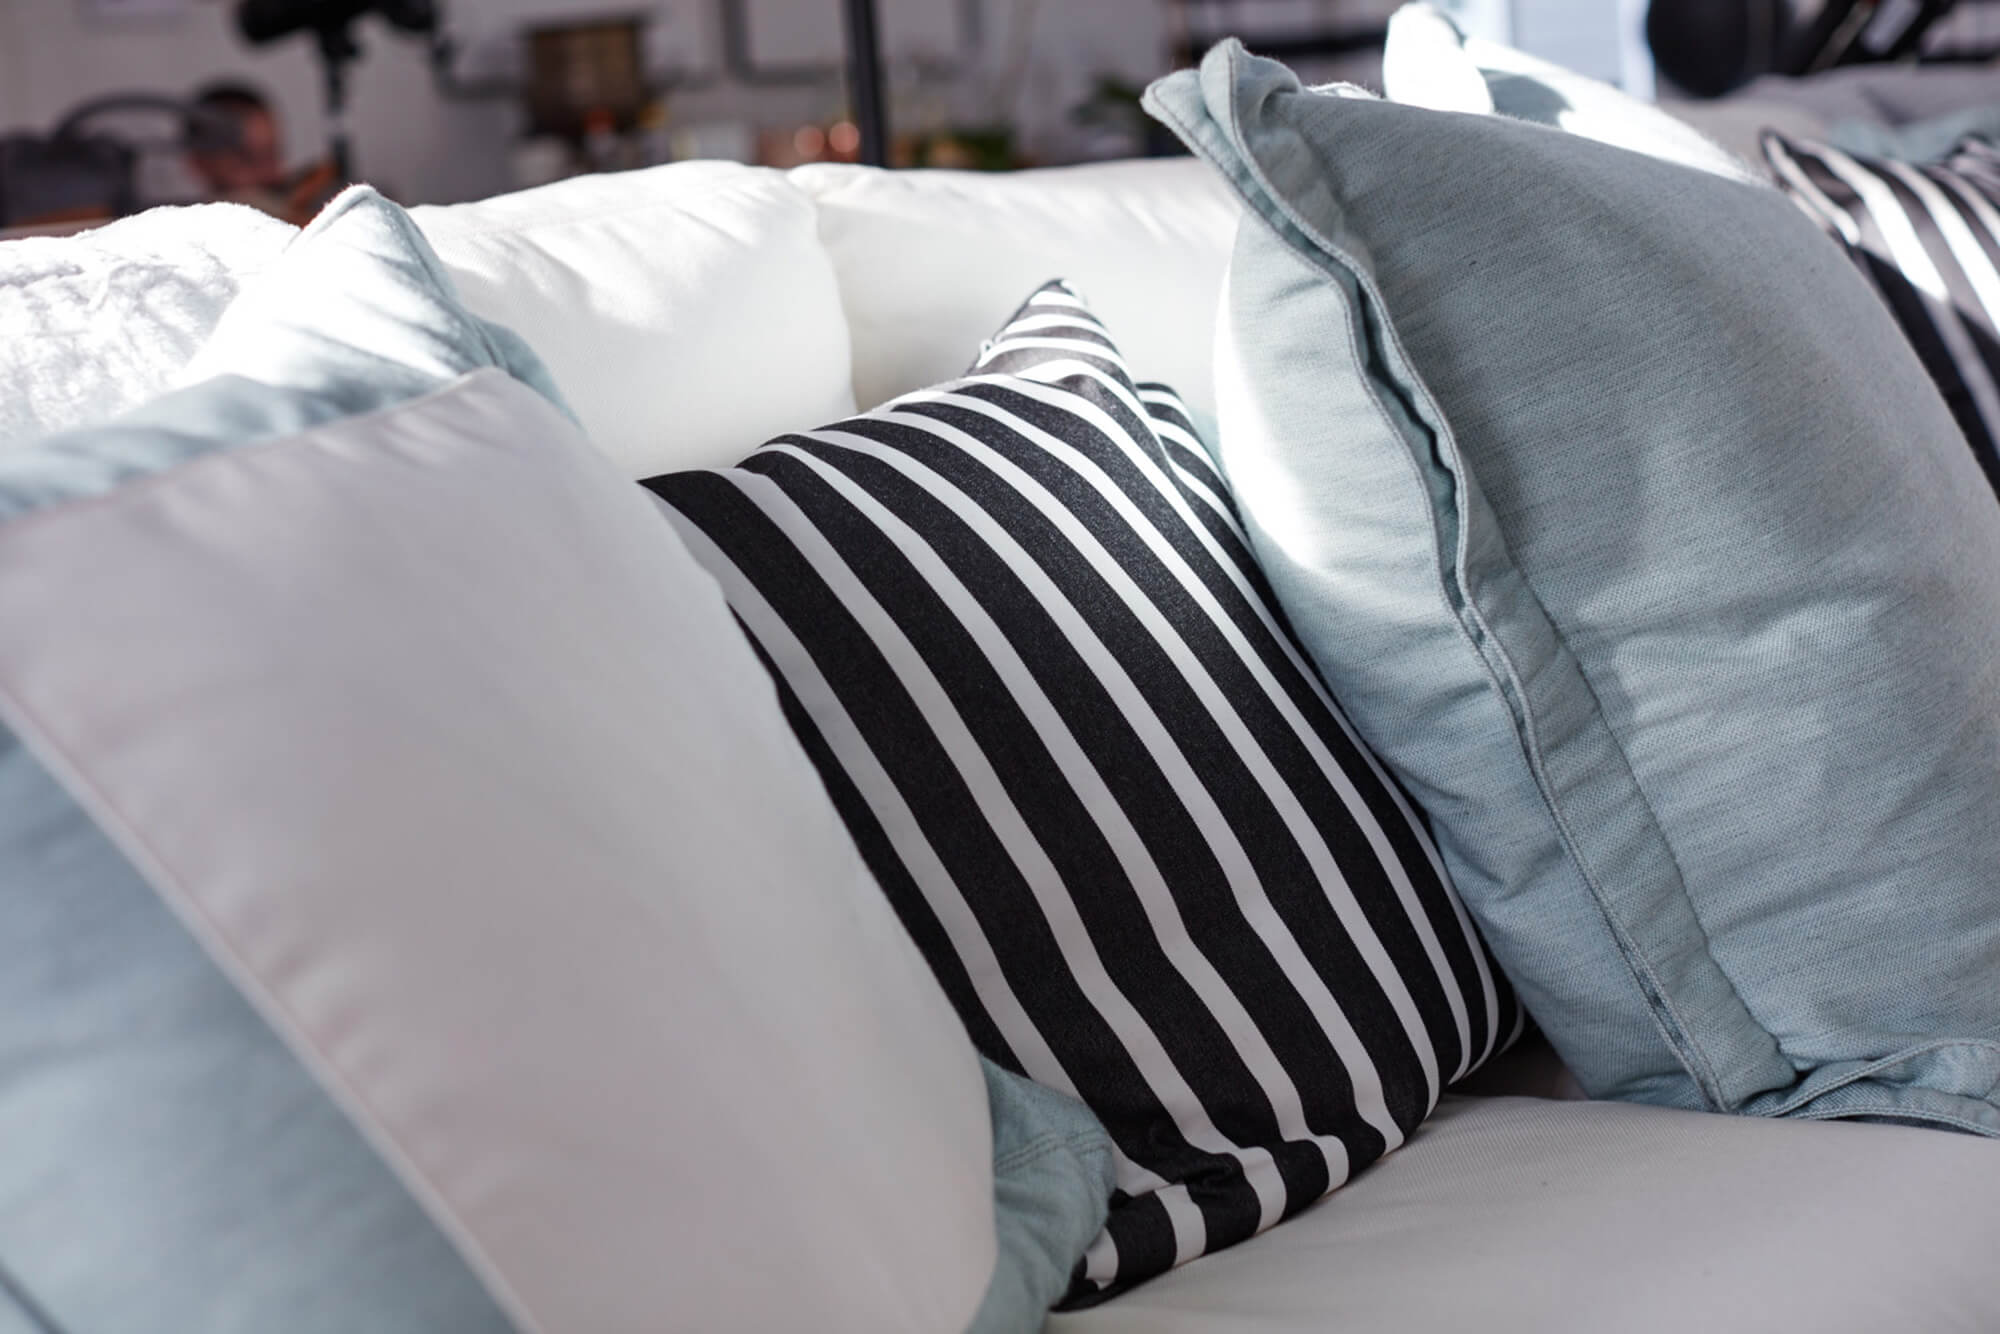 A white sofa gets a pop of color from teal pillows and black and white striped throw pillows